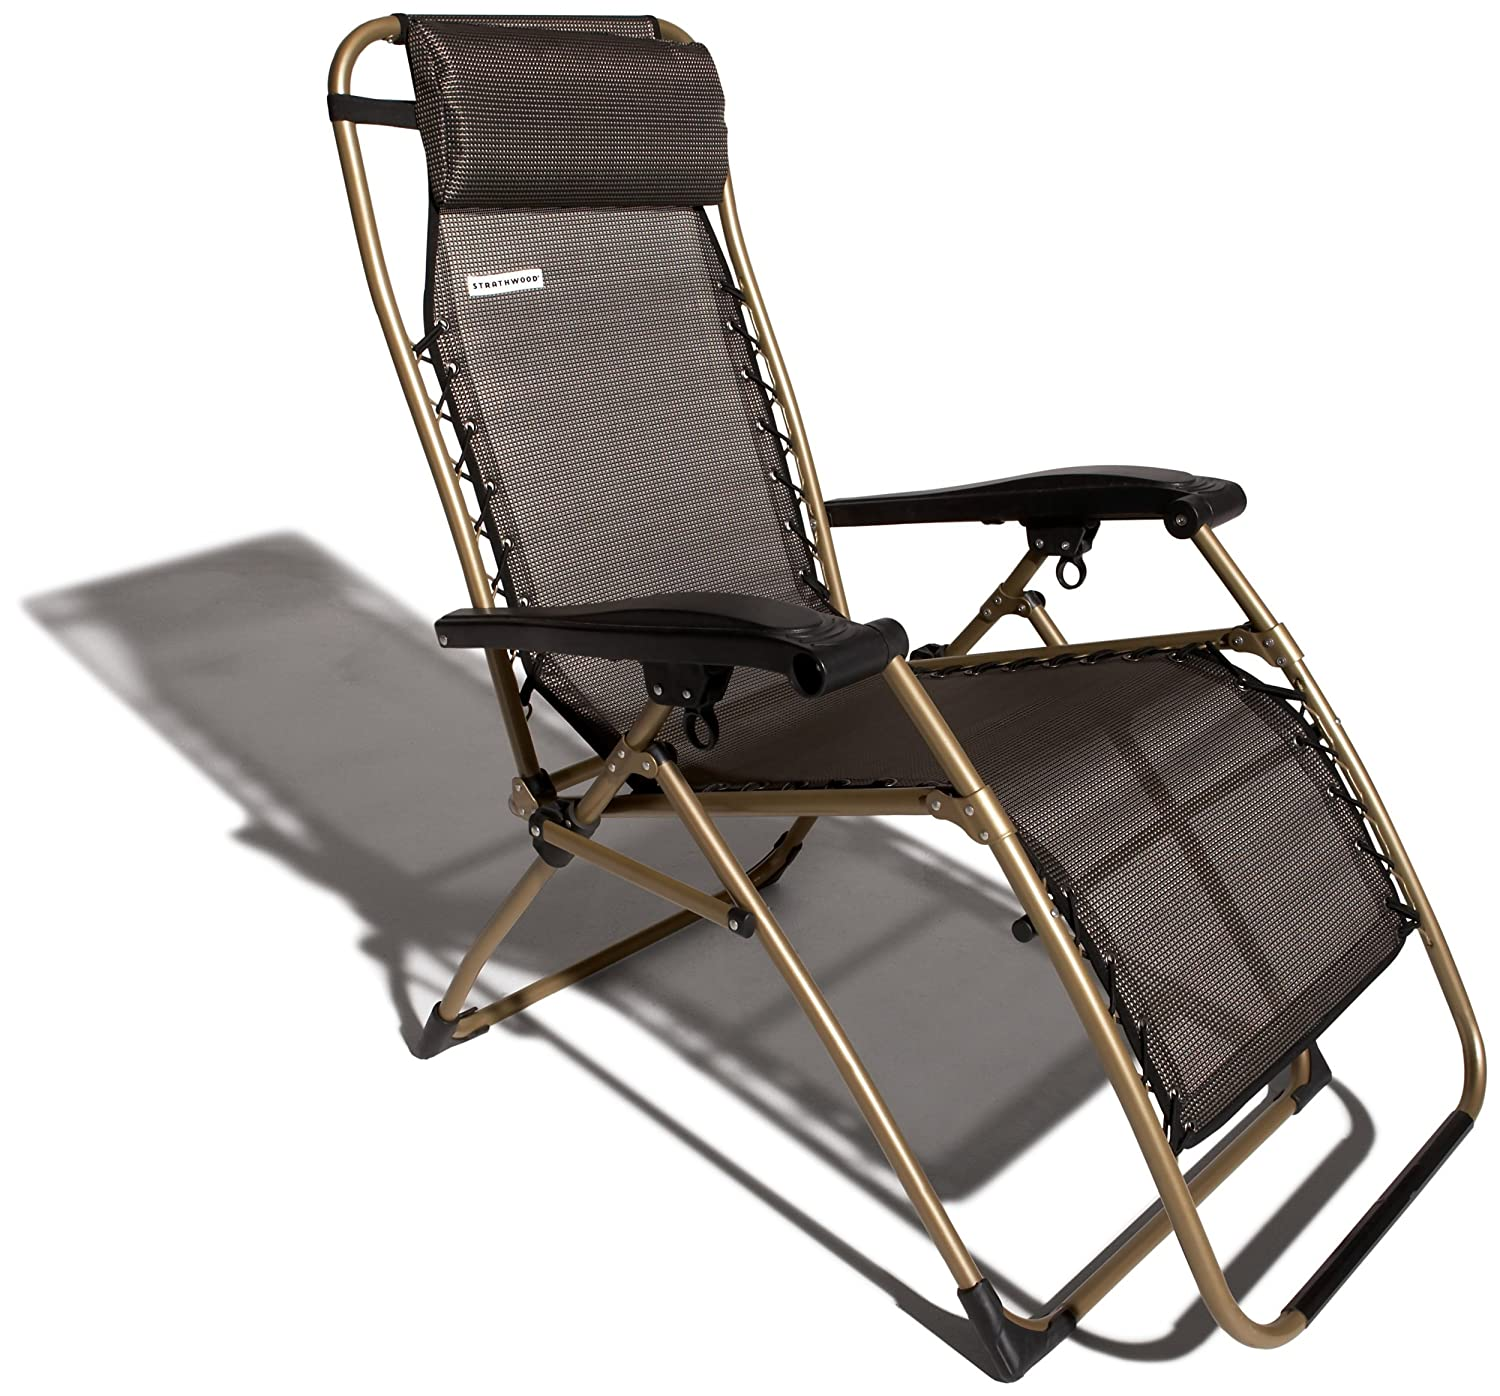 Amazon.com : Strathwood Basics Anti-Gravity Adjustable Recliner Chair, Dark  Brown with Champagne Frame : Patio Lounge Chairs : Garden & Outdoor